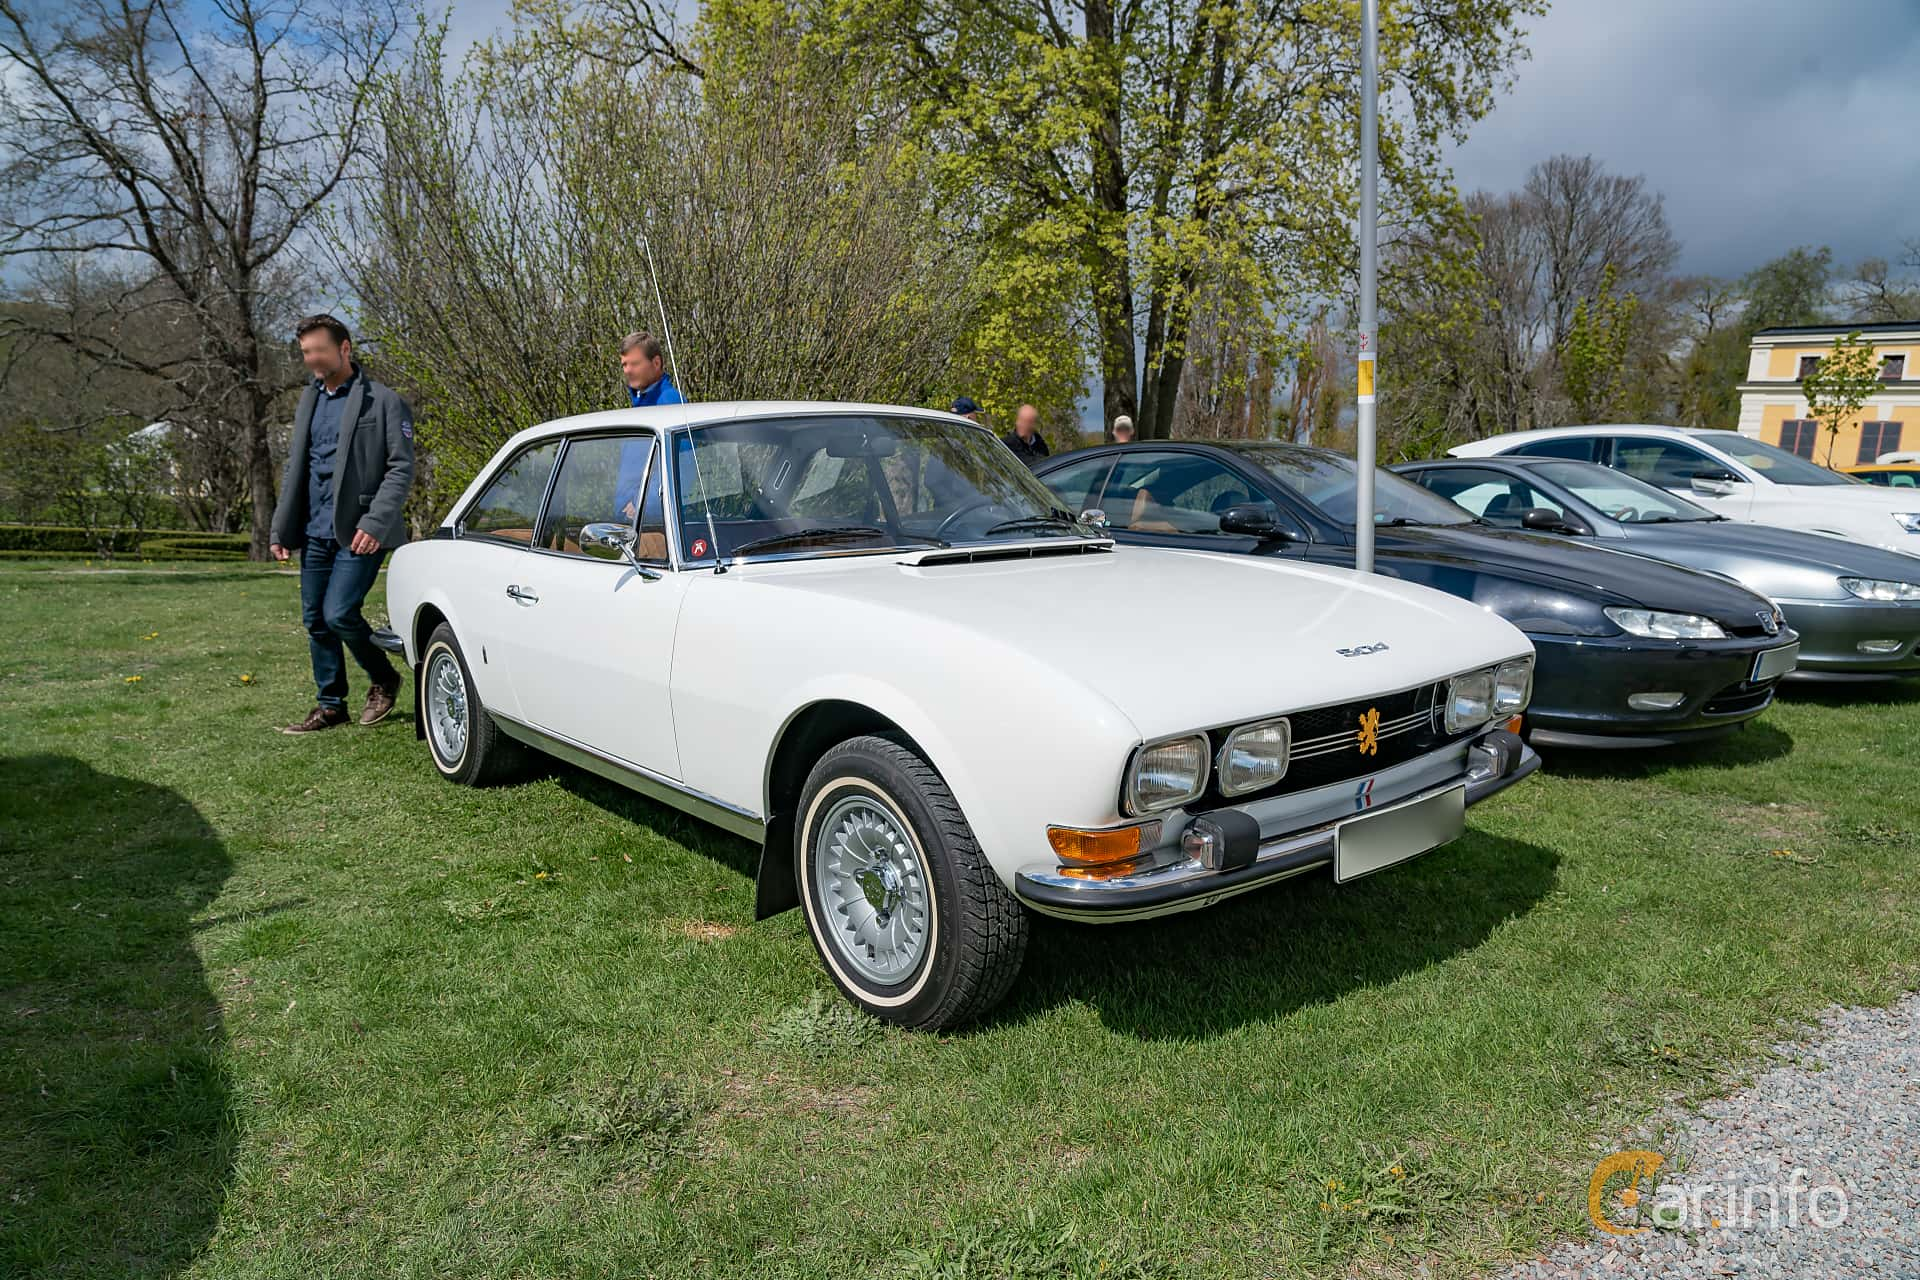 Peugeot 504 Coupé 2.0 Manual, 102hp, 1973 at Fest För Franska Fordon  på Taxinge slott 2019